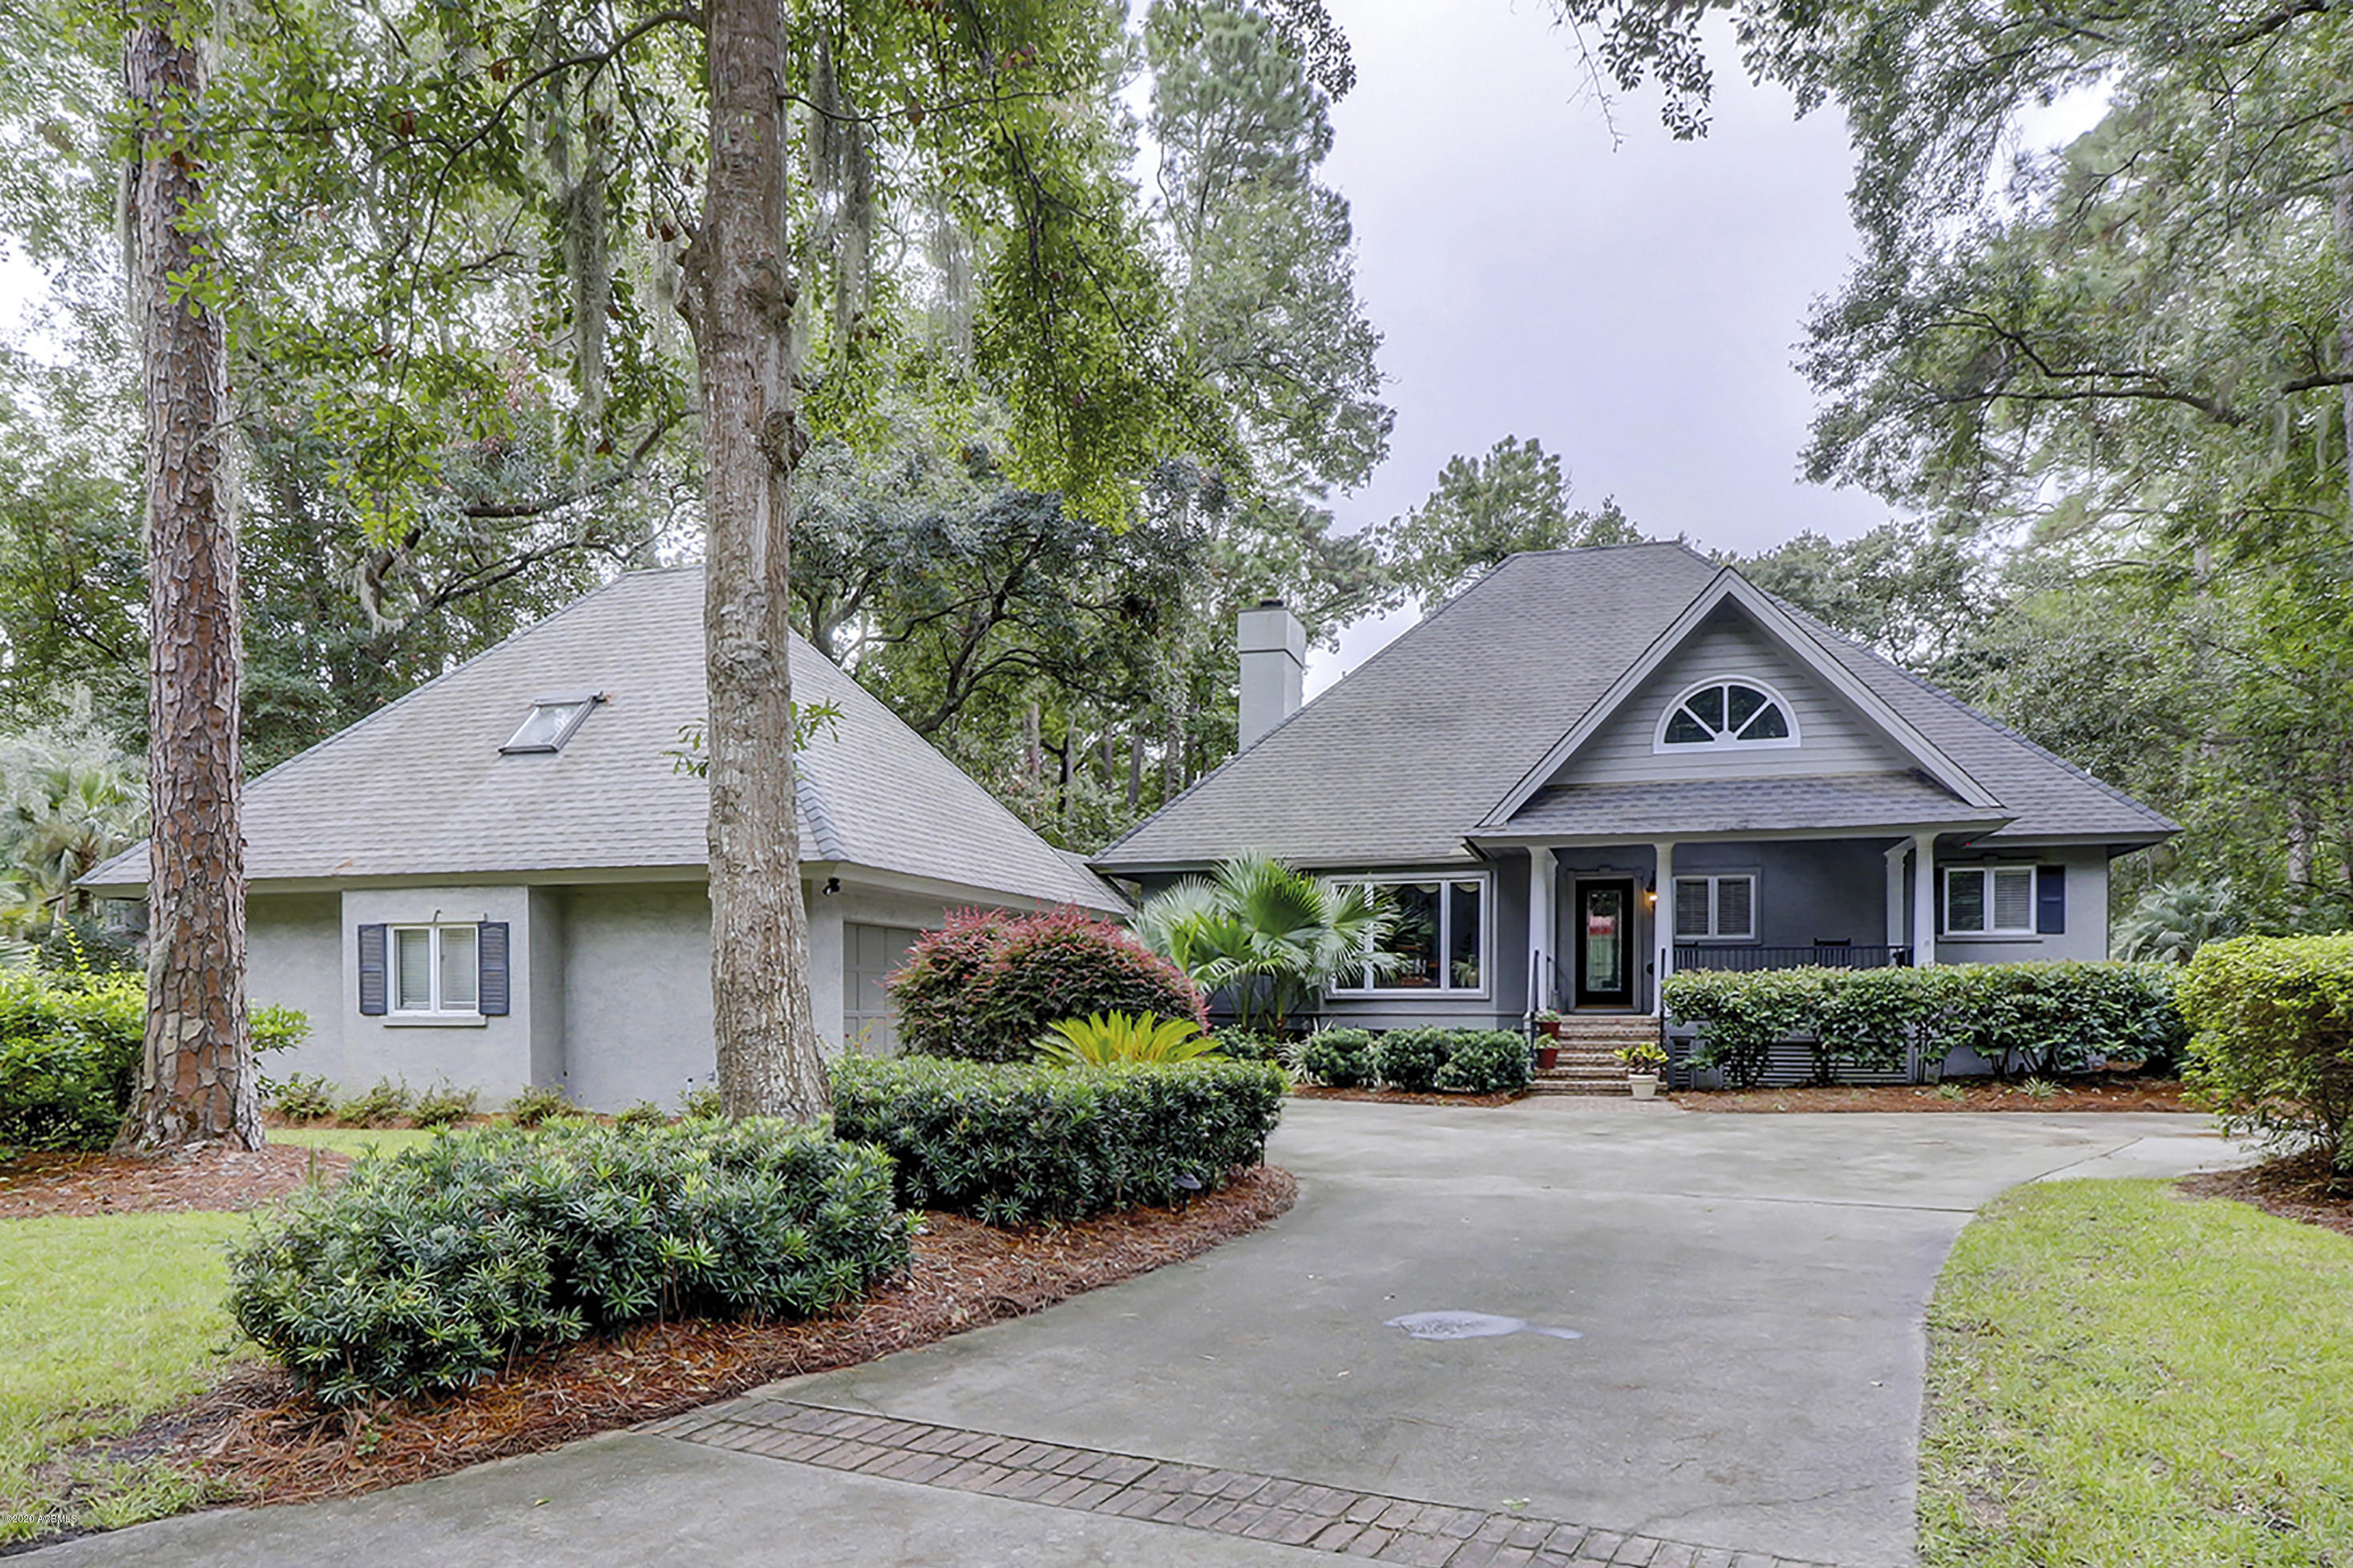 Photo of 4 Clarendon Lane, Hilton Head Island, SC 29928